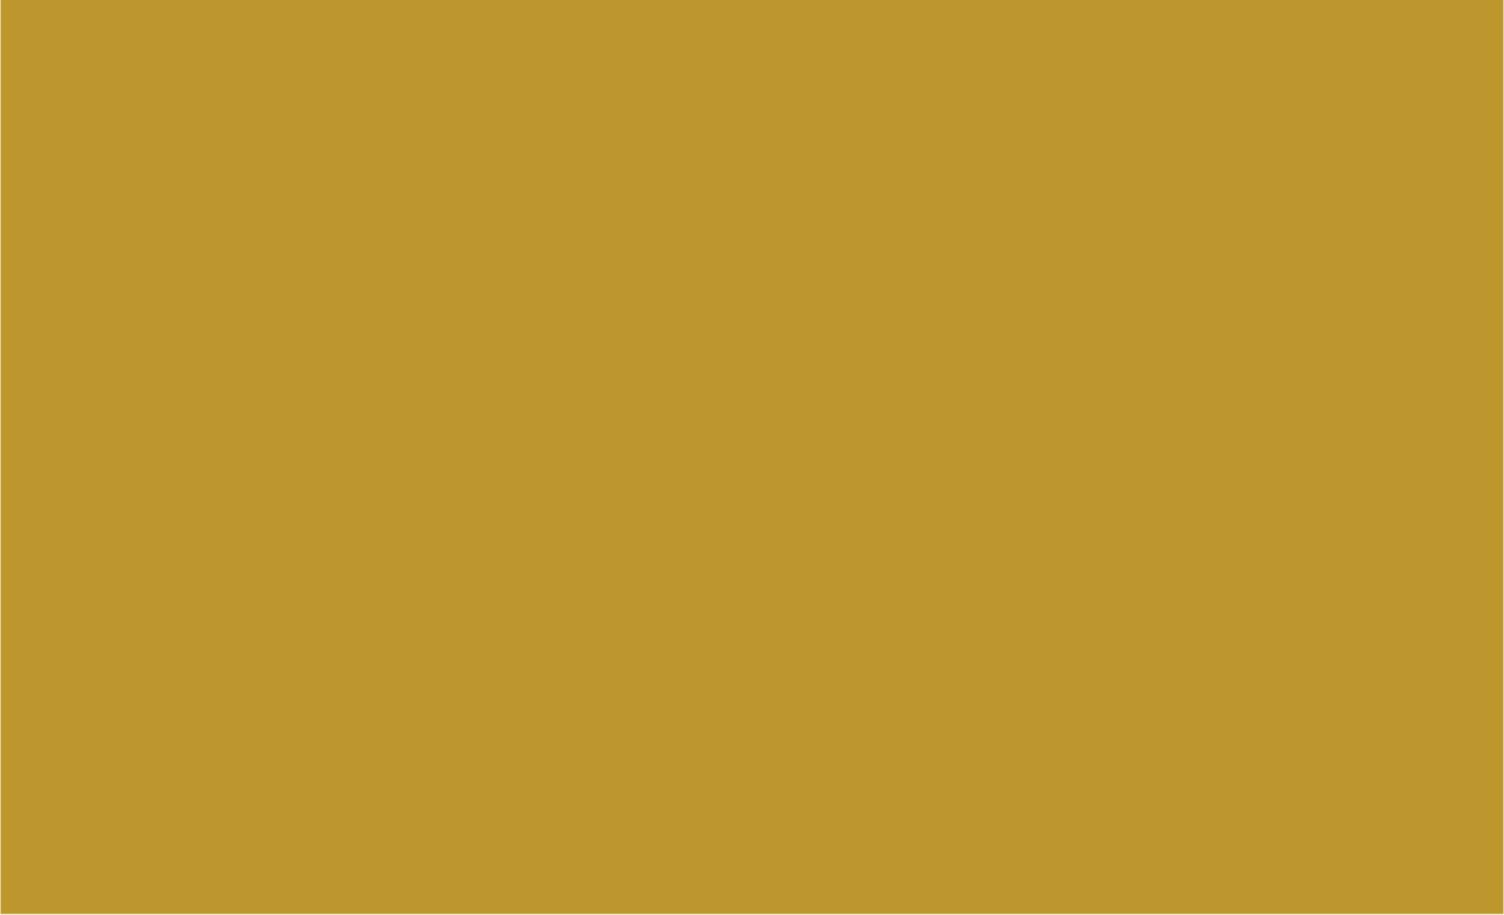 Gold Background Images Pictures   Becuo 1504x915